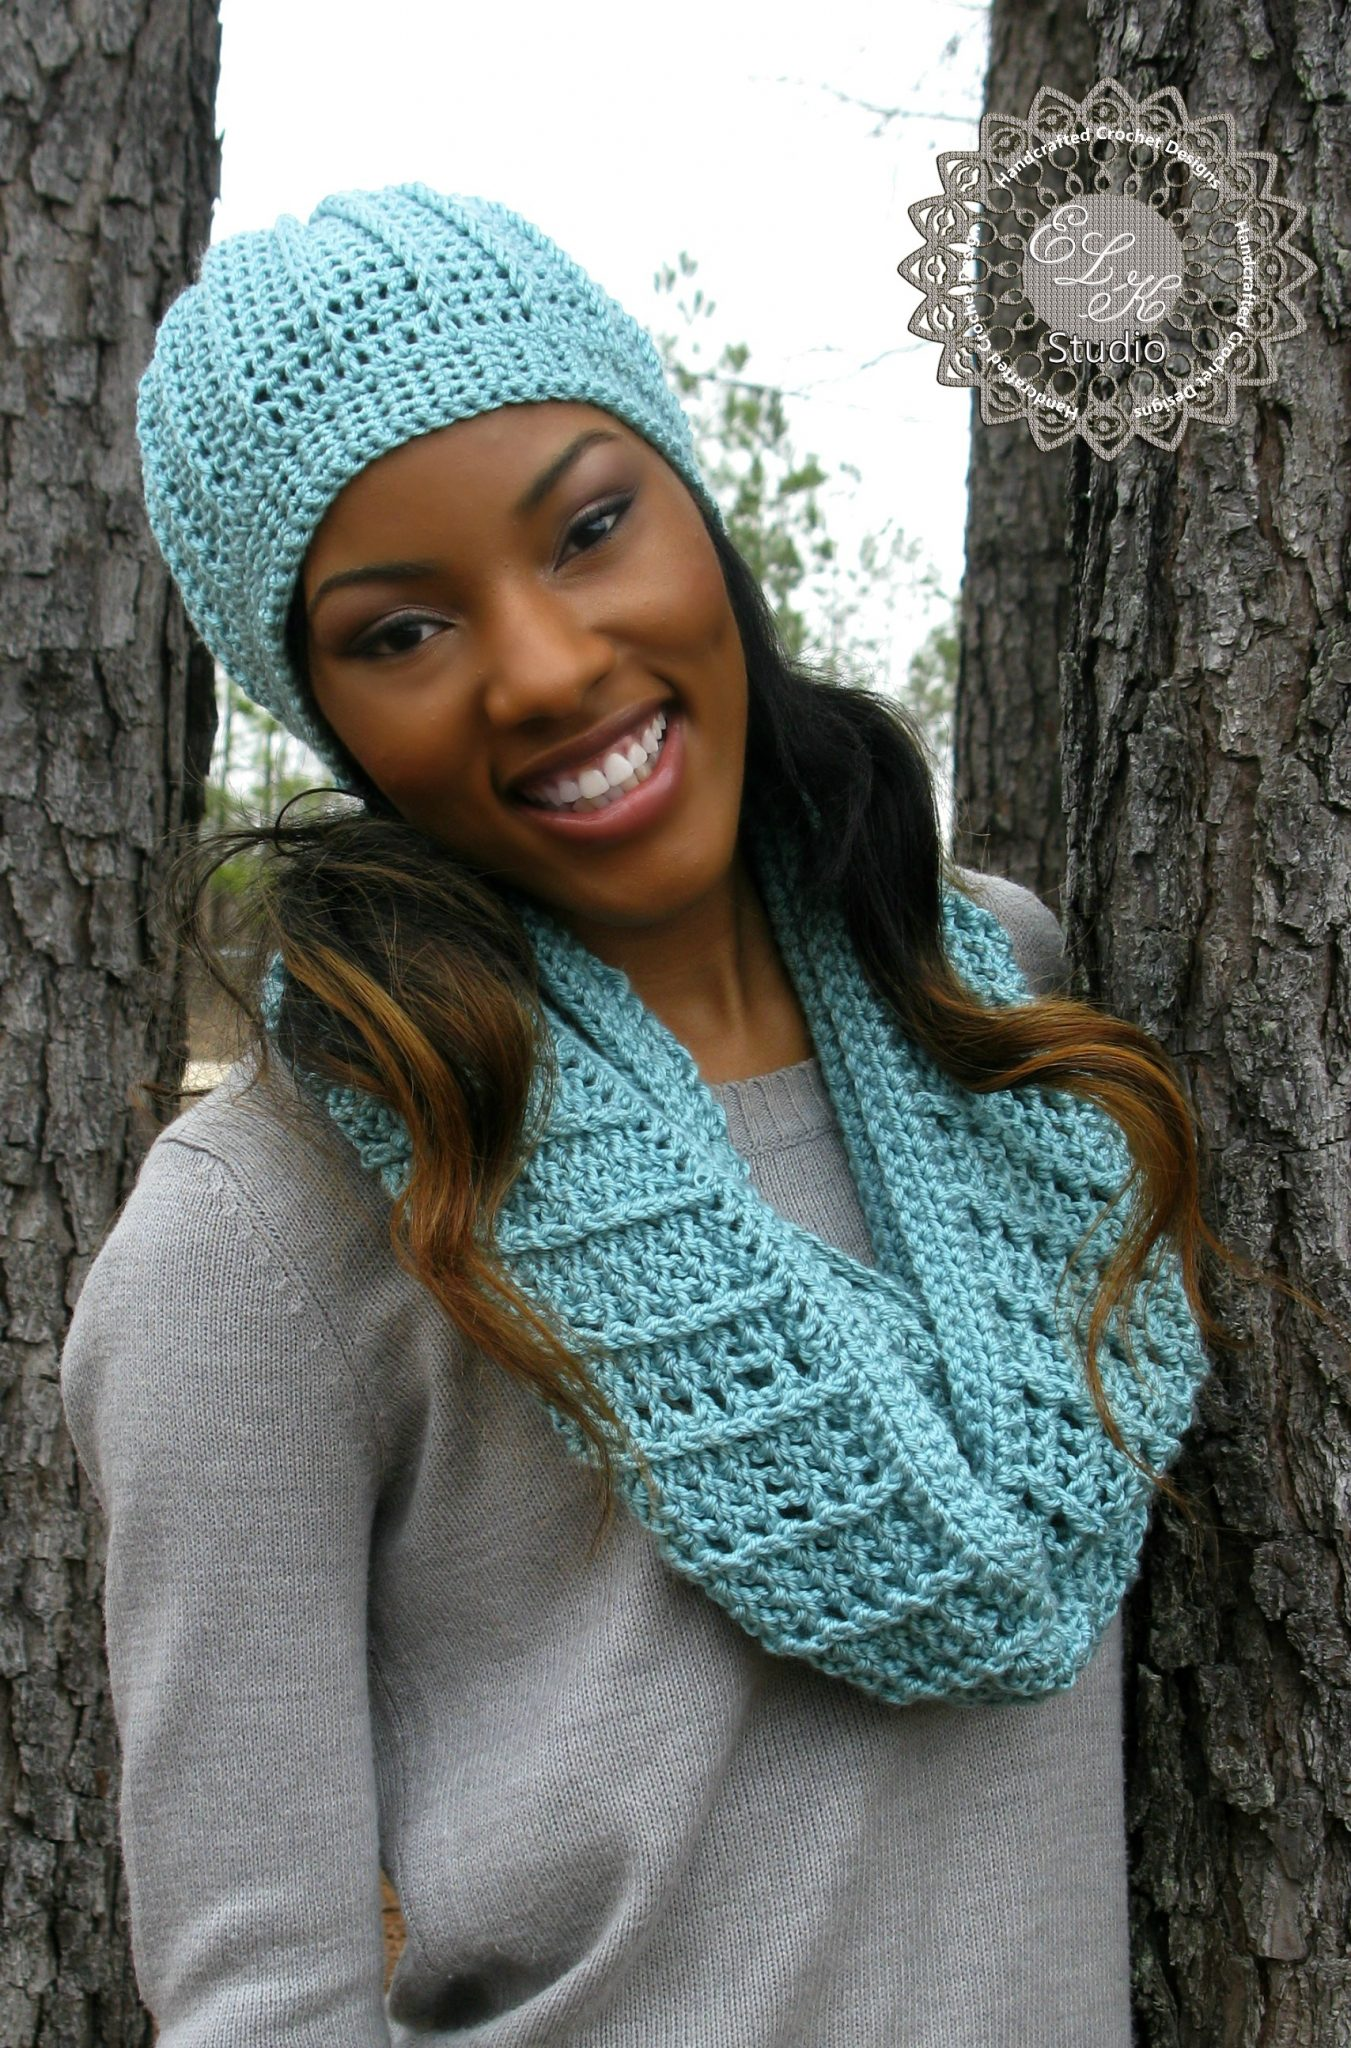 Free Crochet Patterns For Hats And Scarf Sets : Country Appeal - A Free Crochet Infinity Scarf Pattern ...